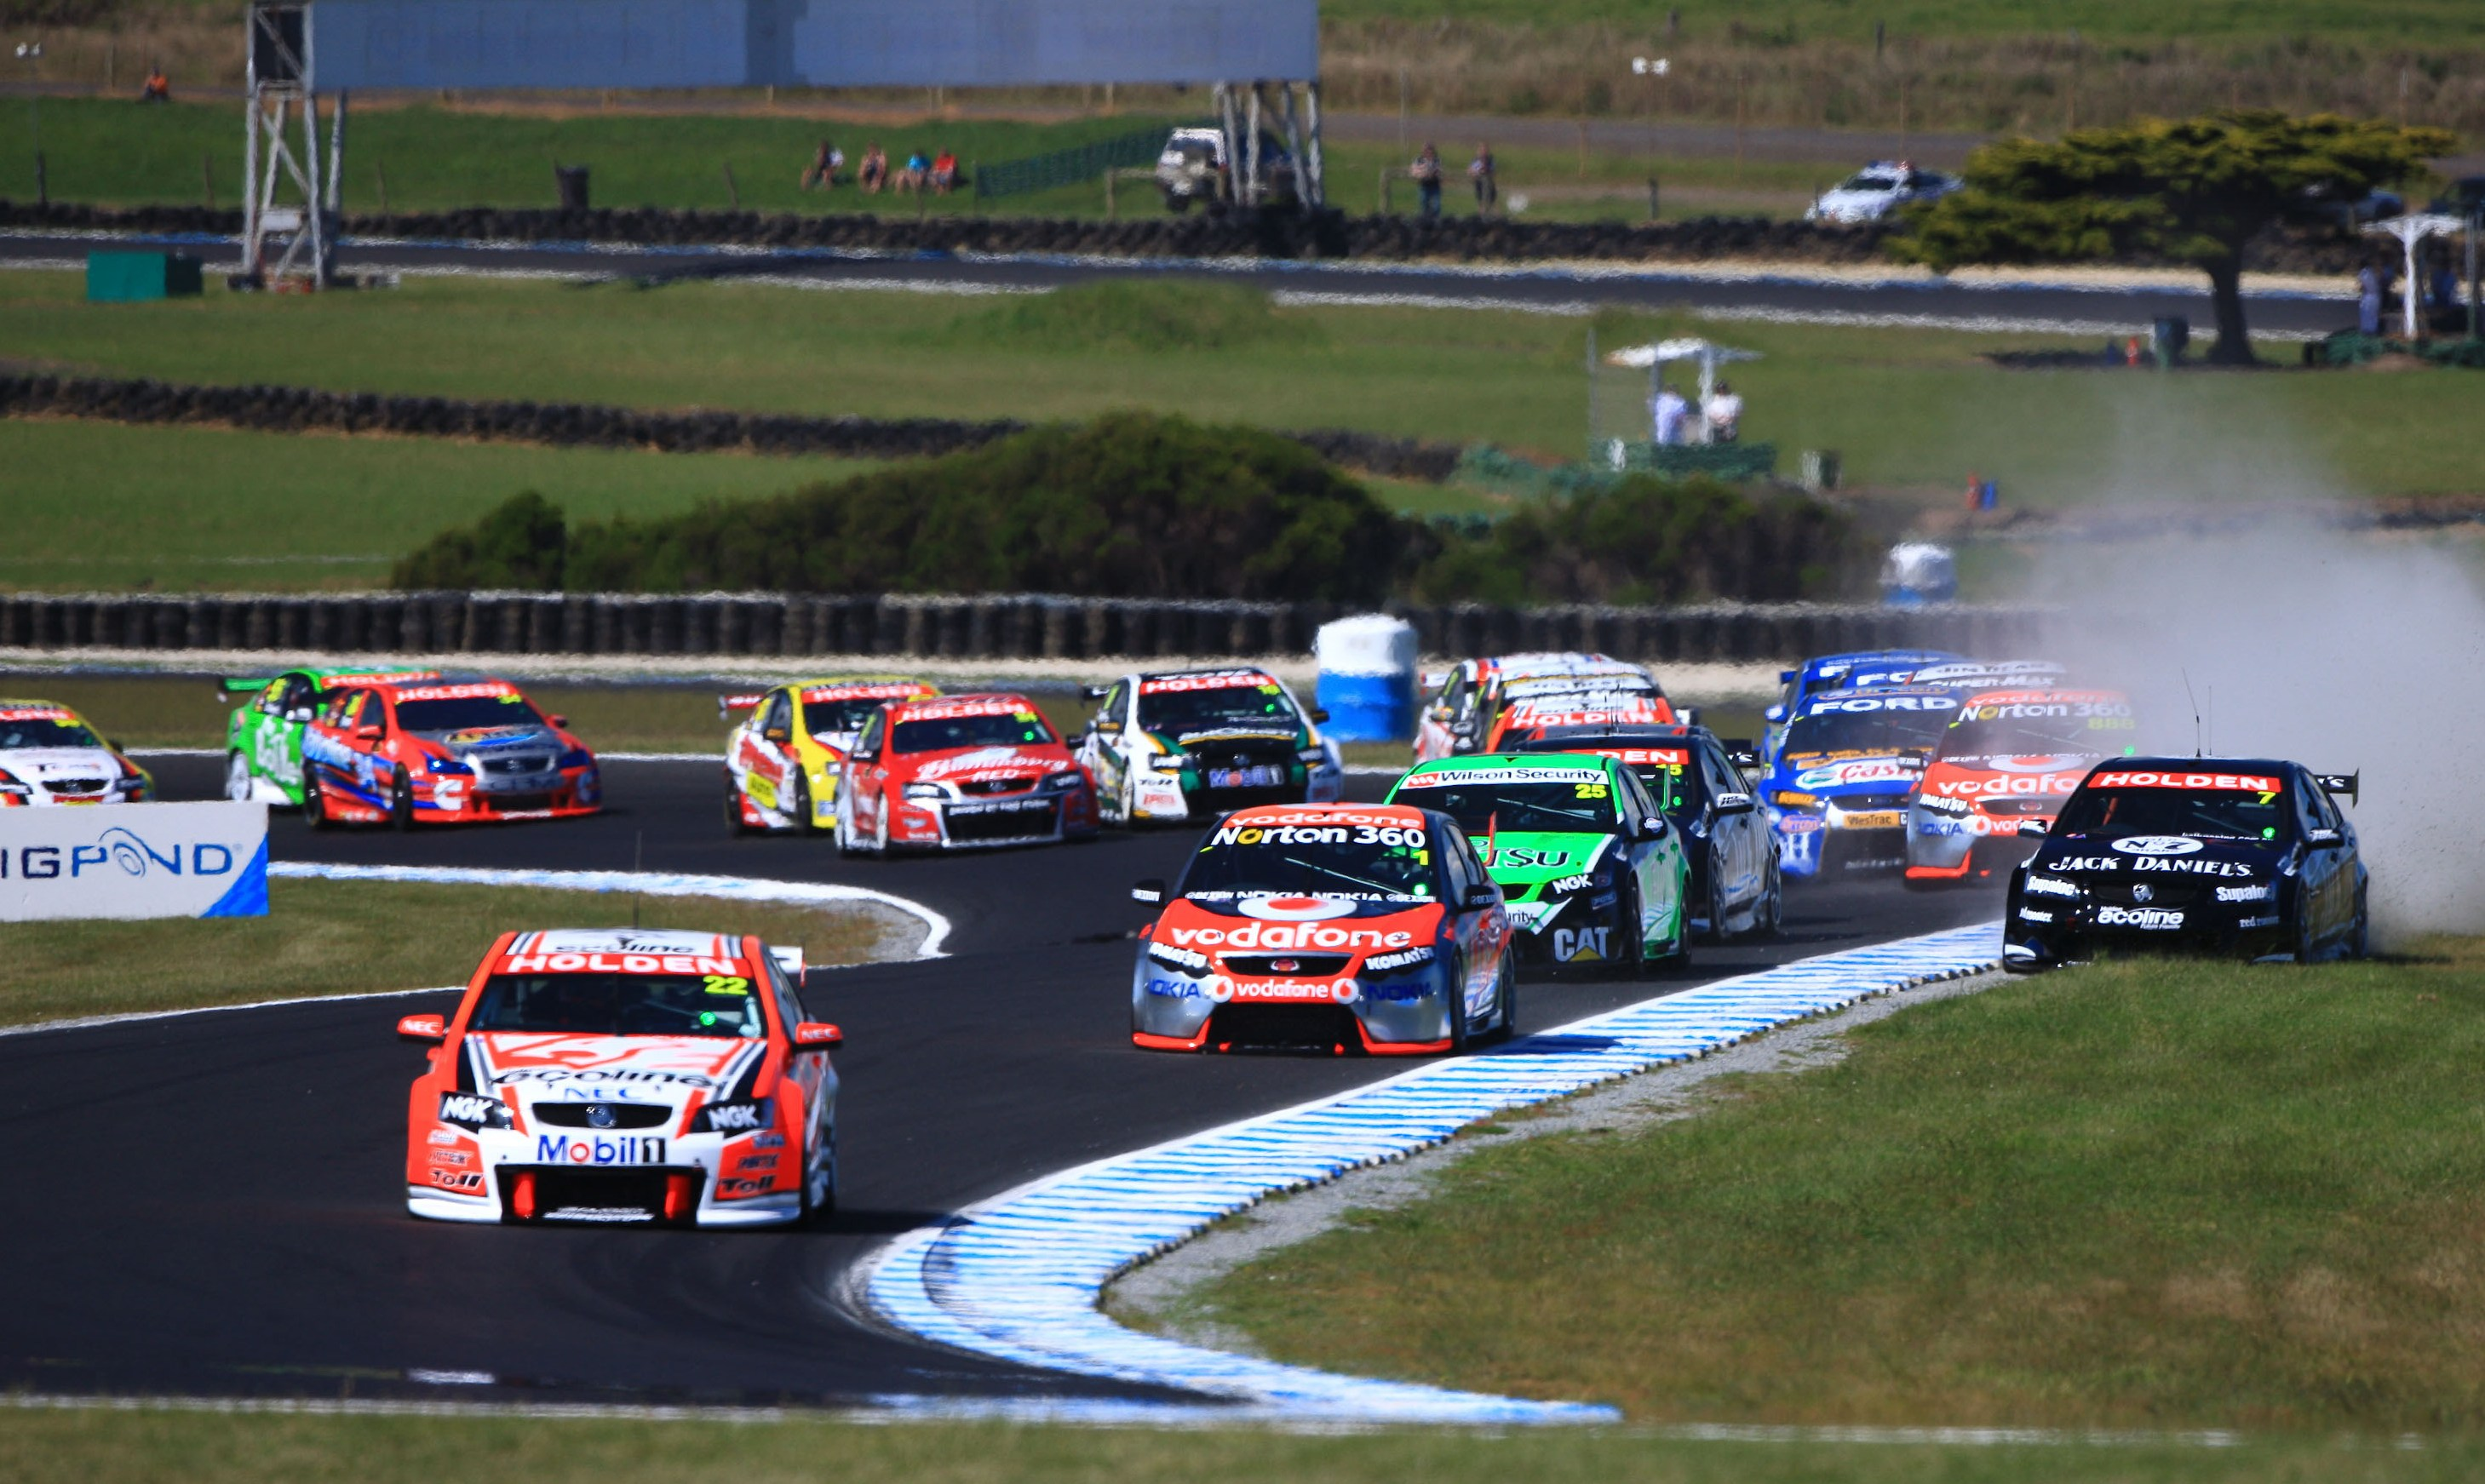 If there was a V8 Supercar Chase ...